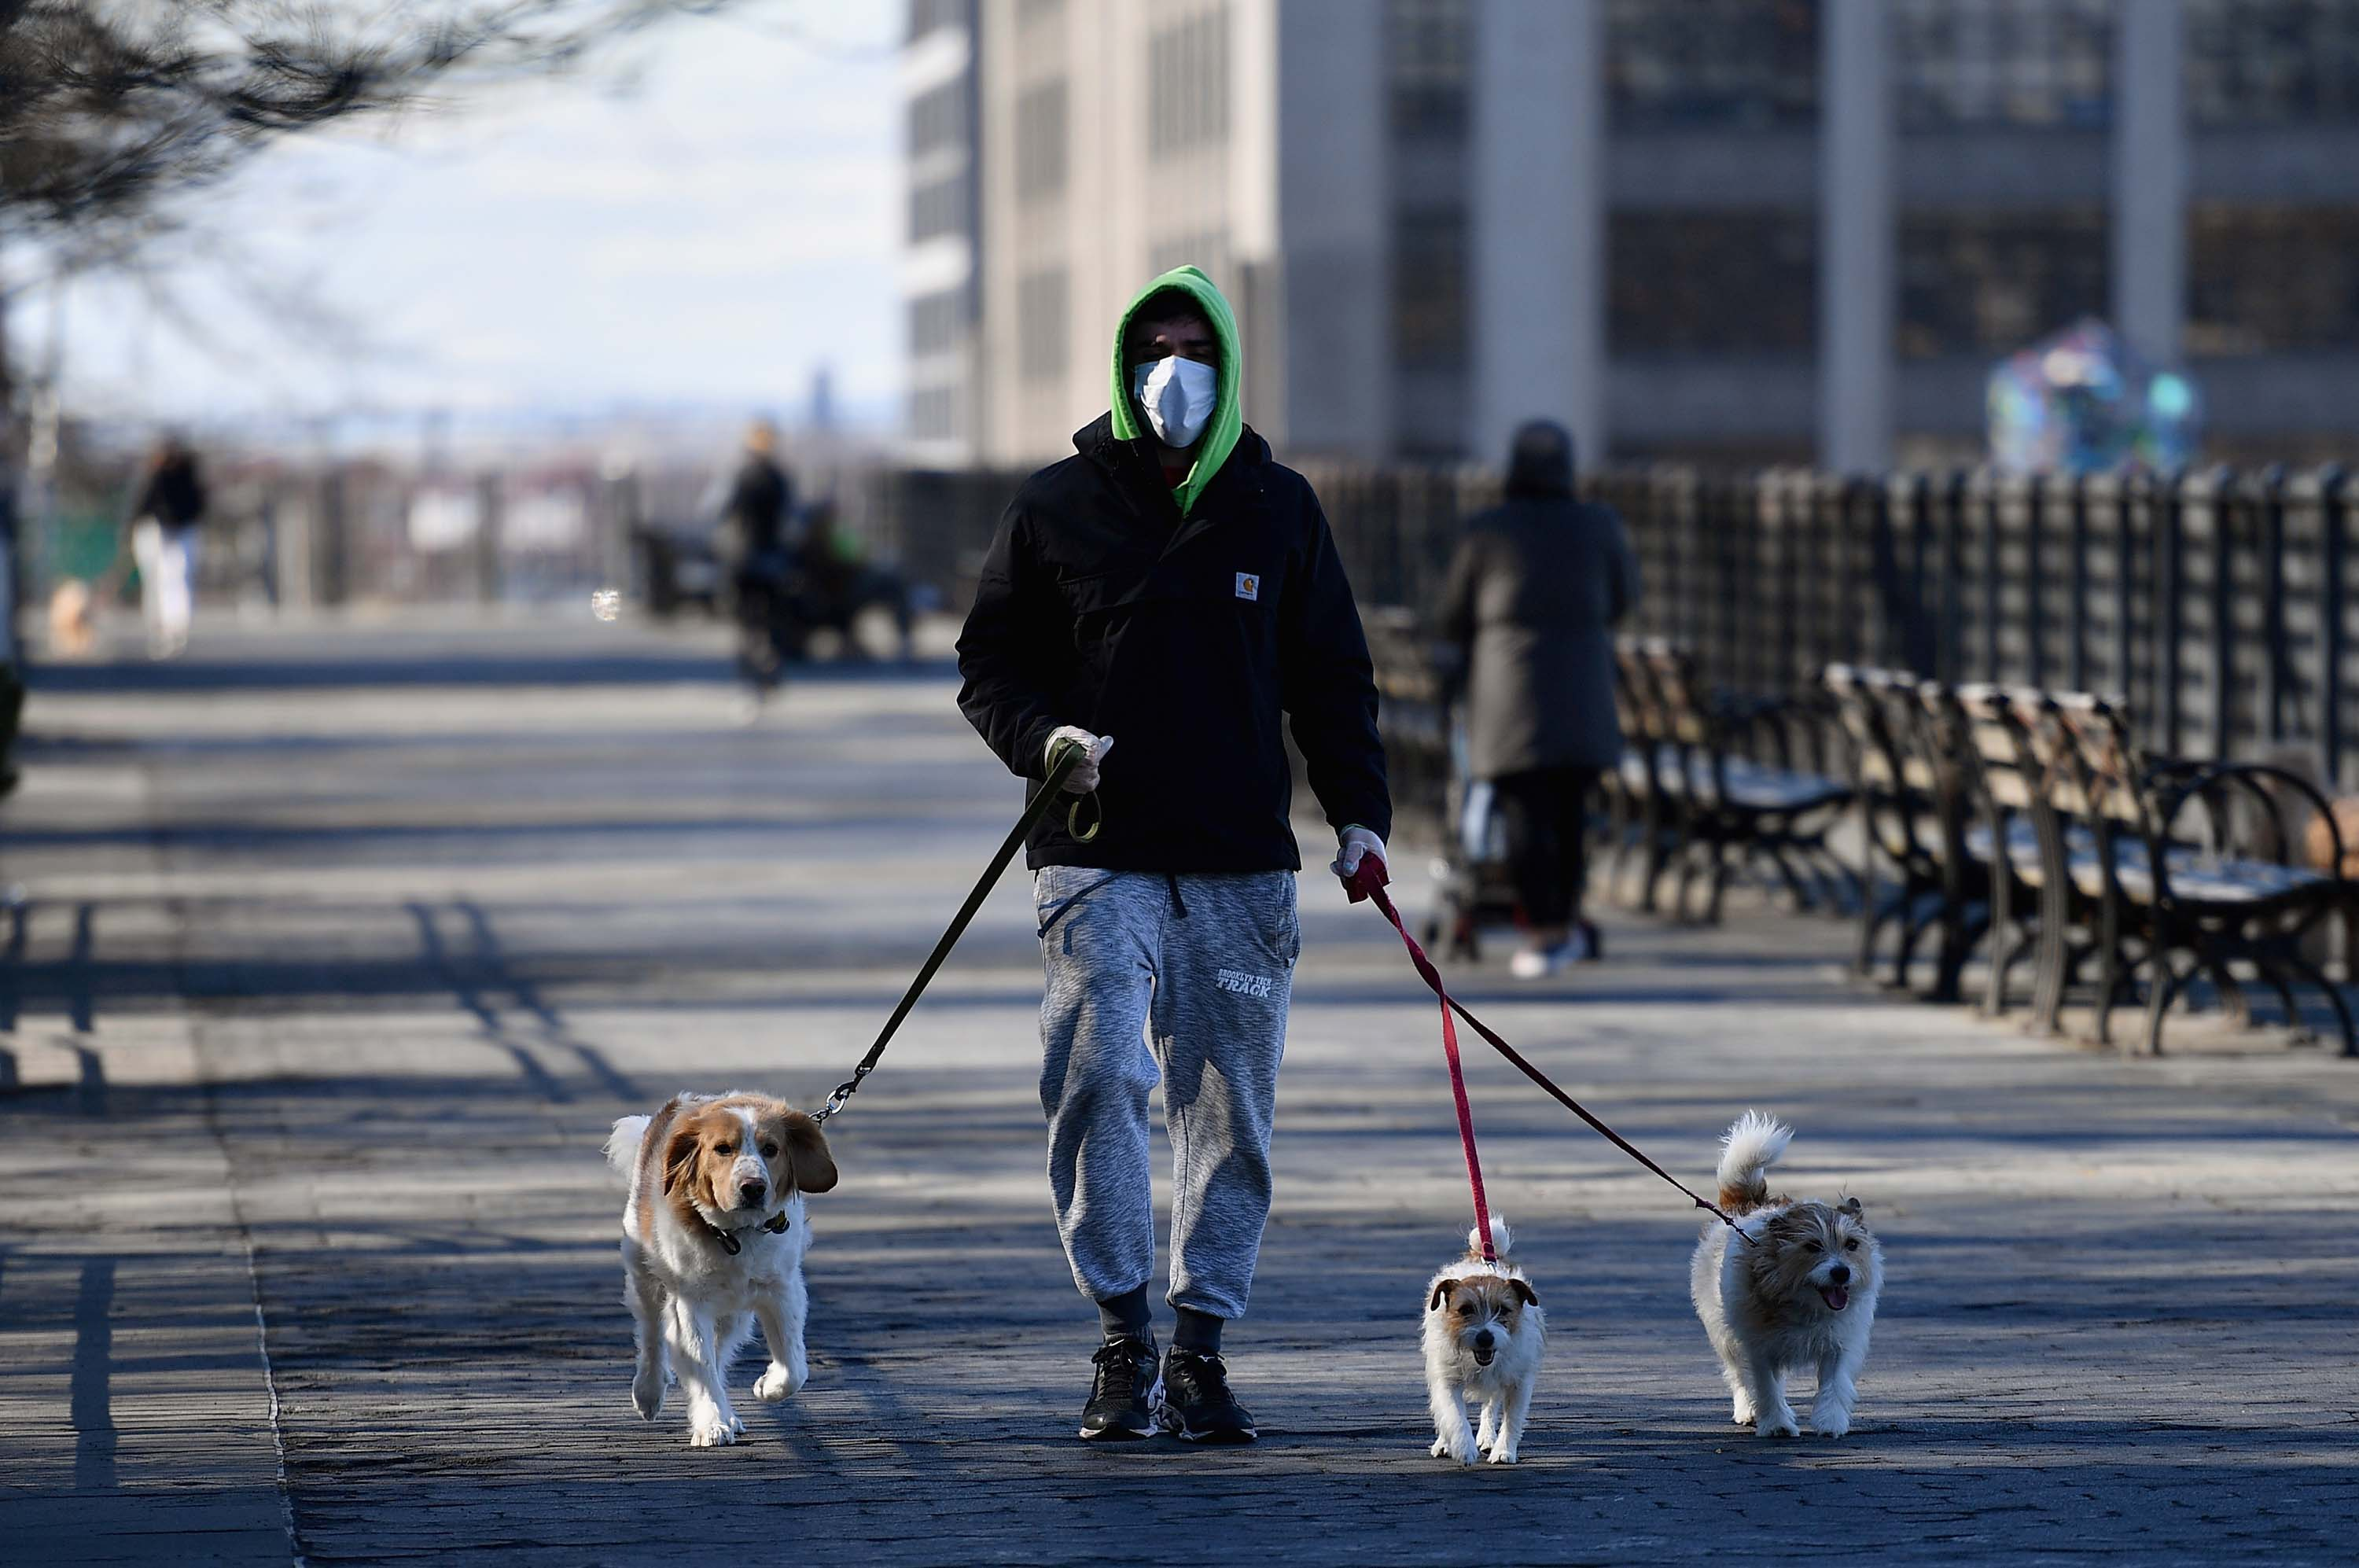 A man wearing a face mask walks dogs on March 24 in New York City.